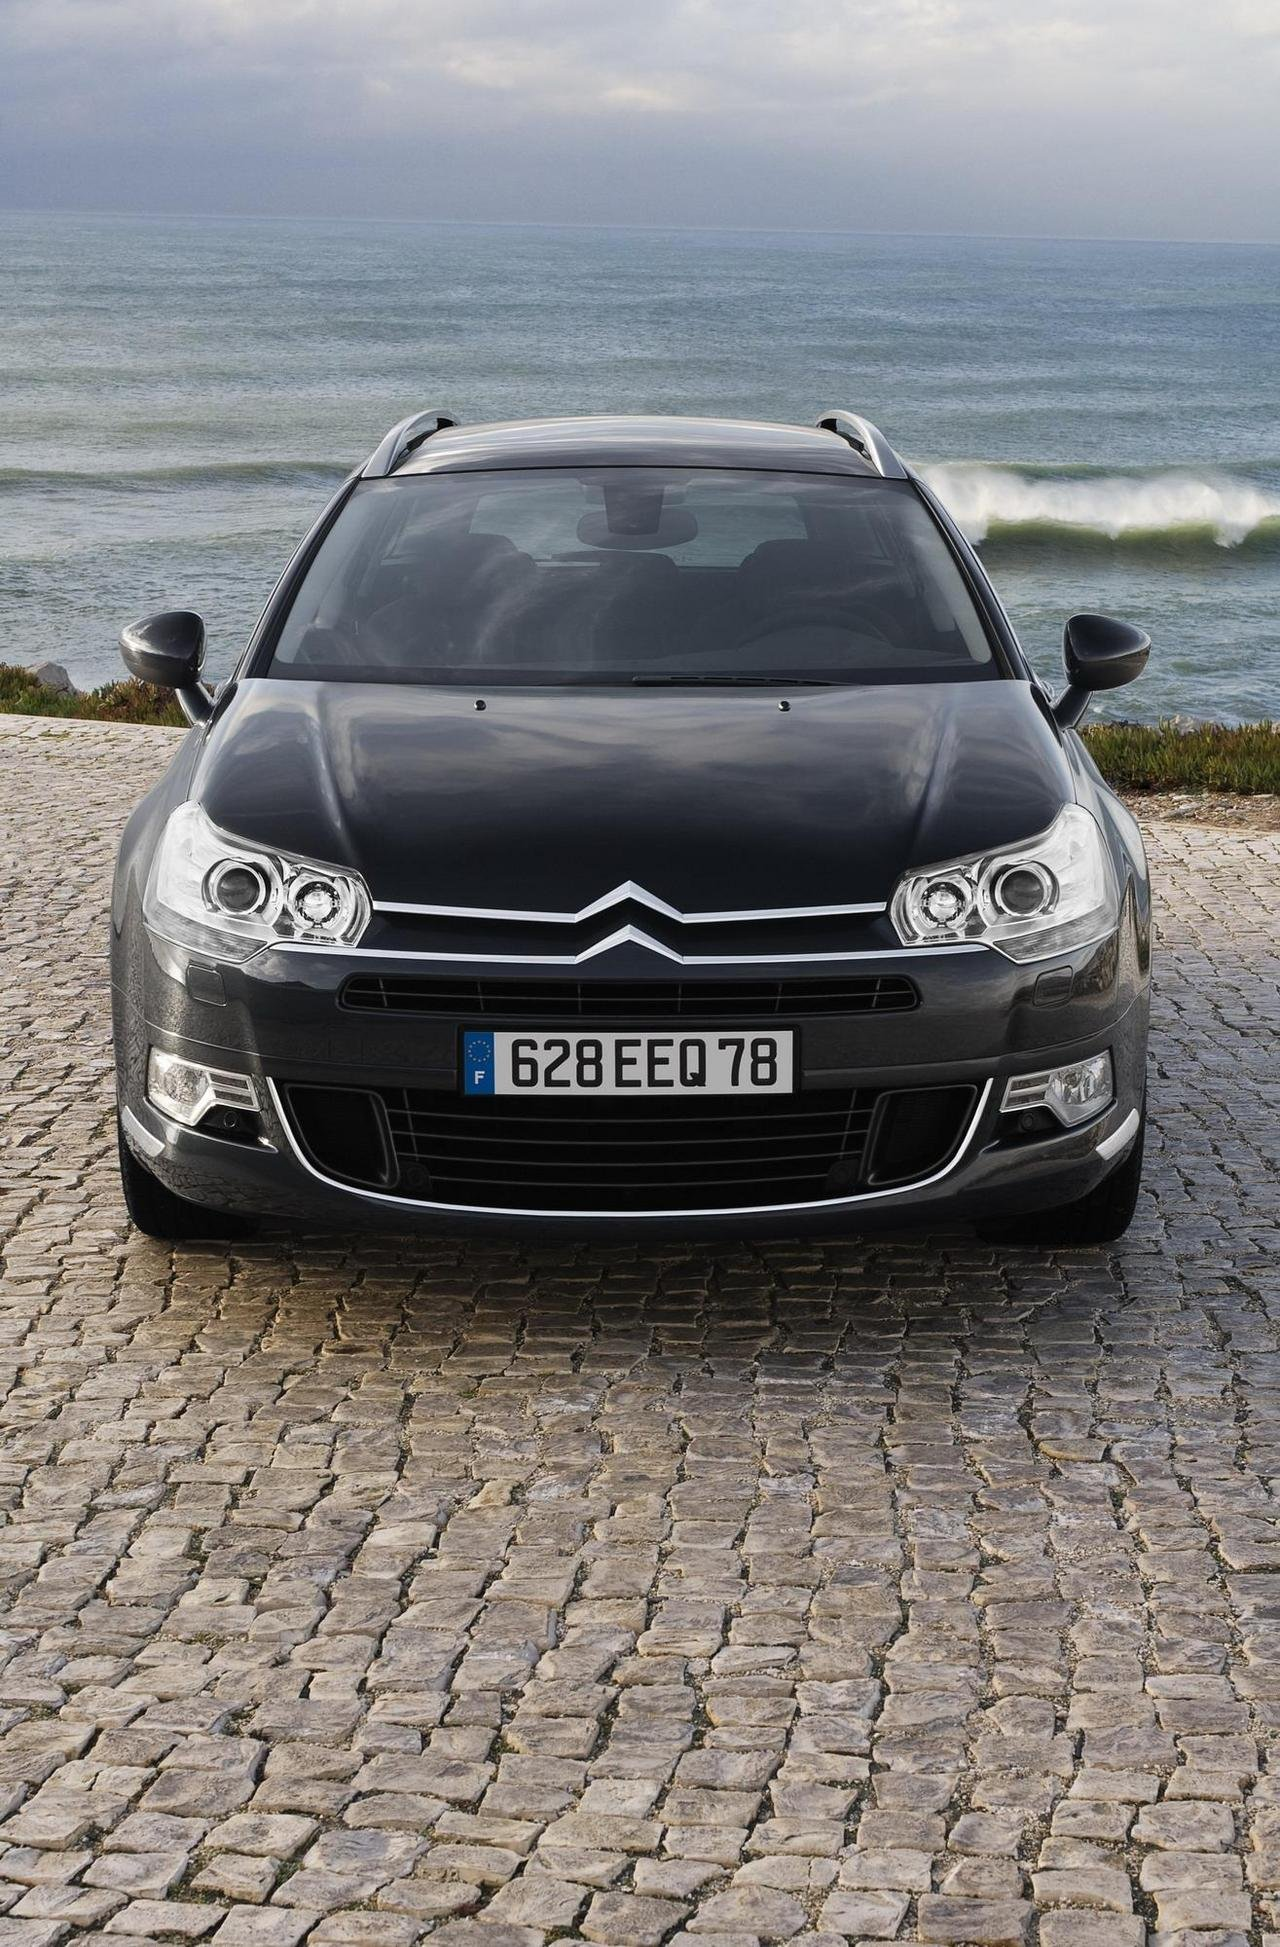 2009 citroen c5 ii picture 297805 car review top speed. Black Bedroom Furniture Sets. Home Design Ideas